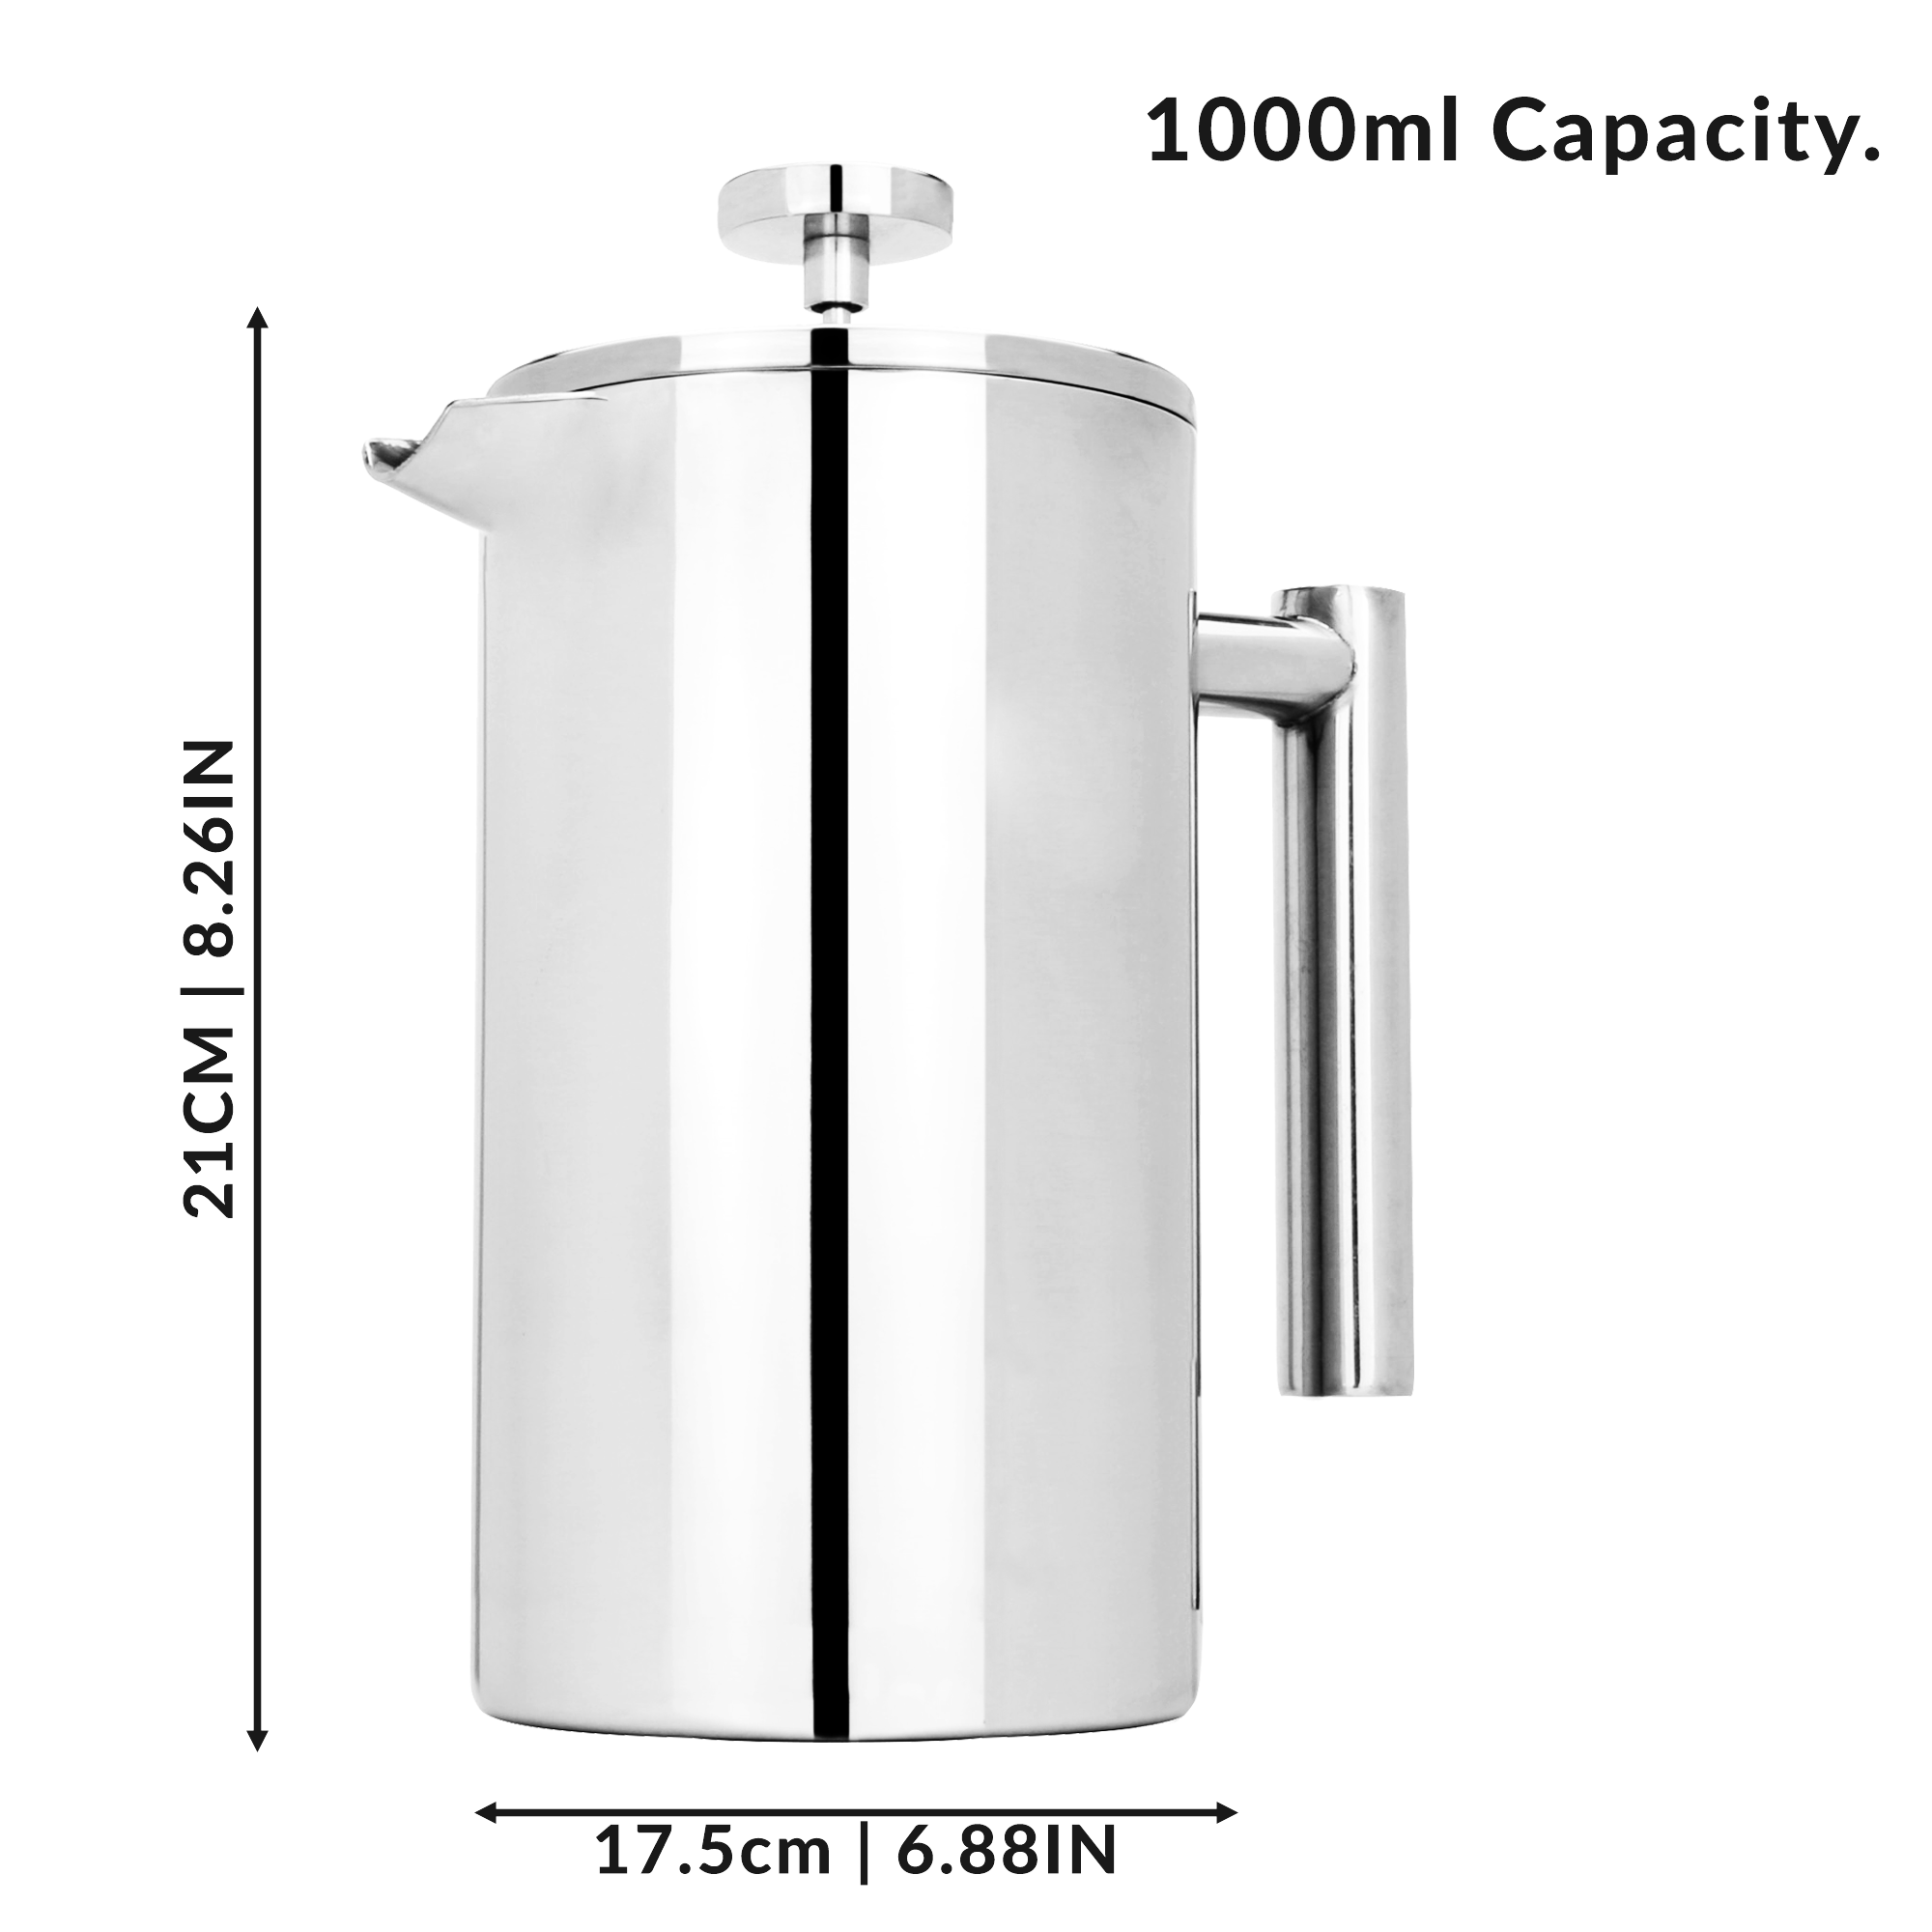 French-Press-Cafetiere-Steel-Coffee-Maker-FREE-Filters-amp-Spoons-M-amp-W miniatura 17